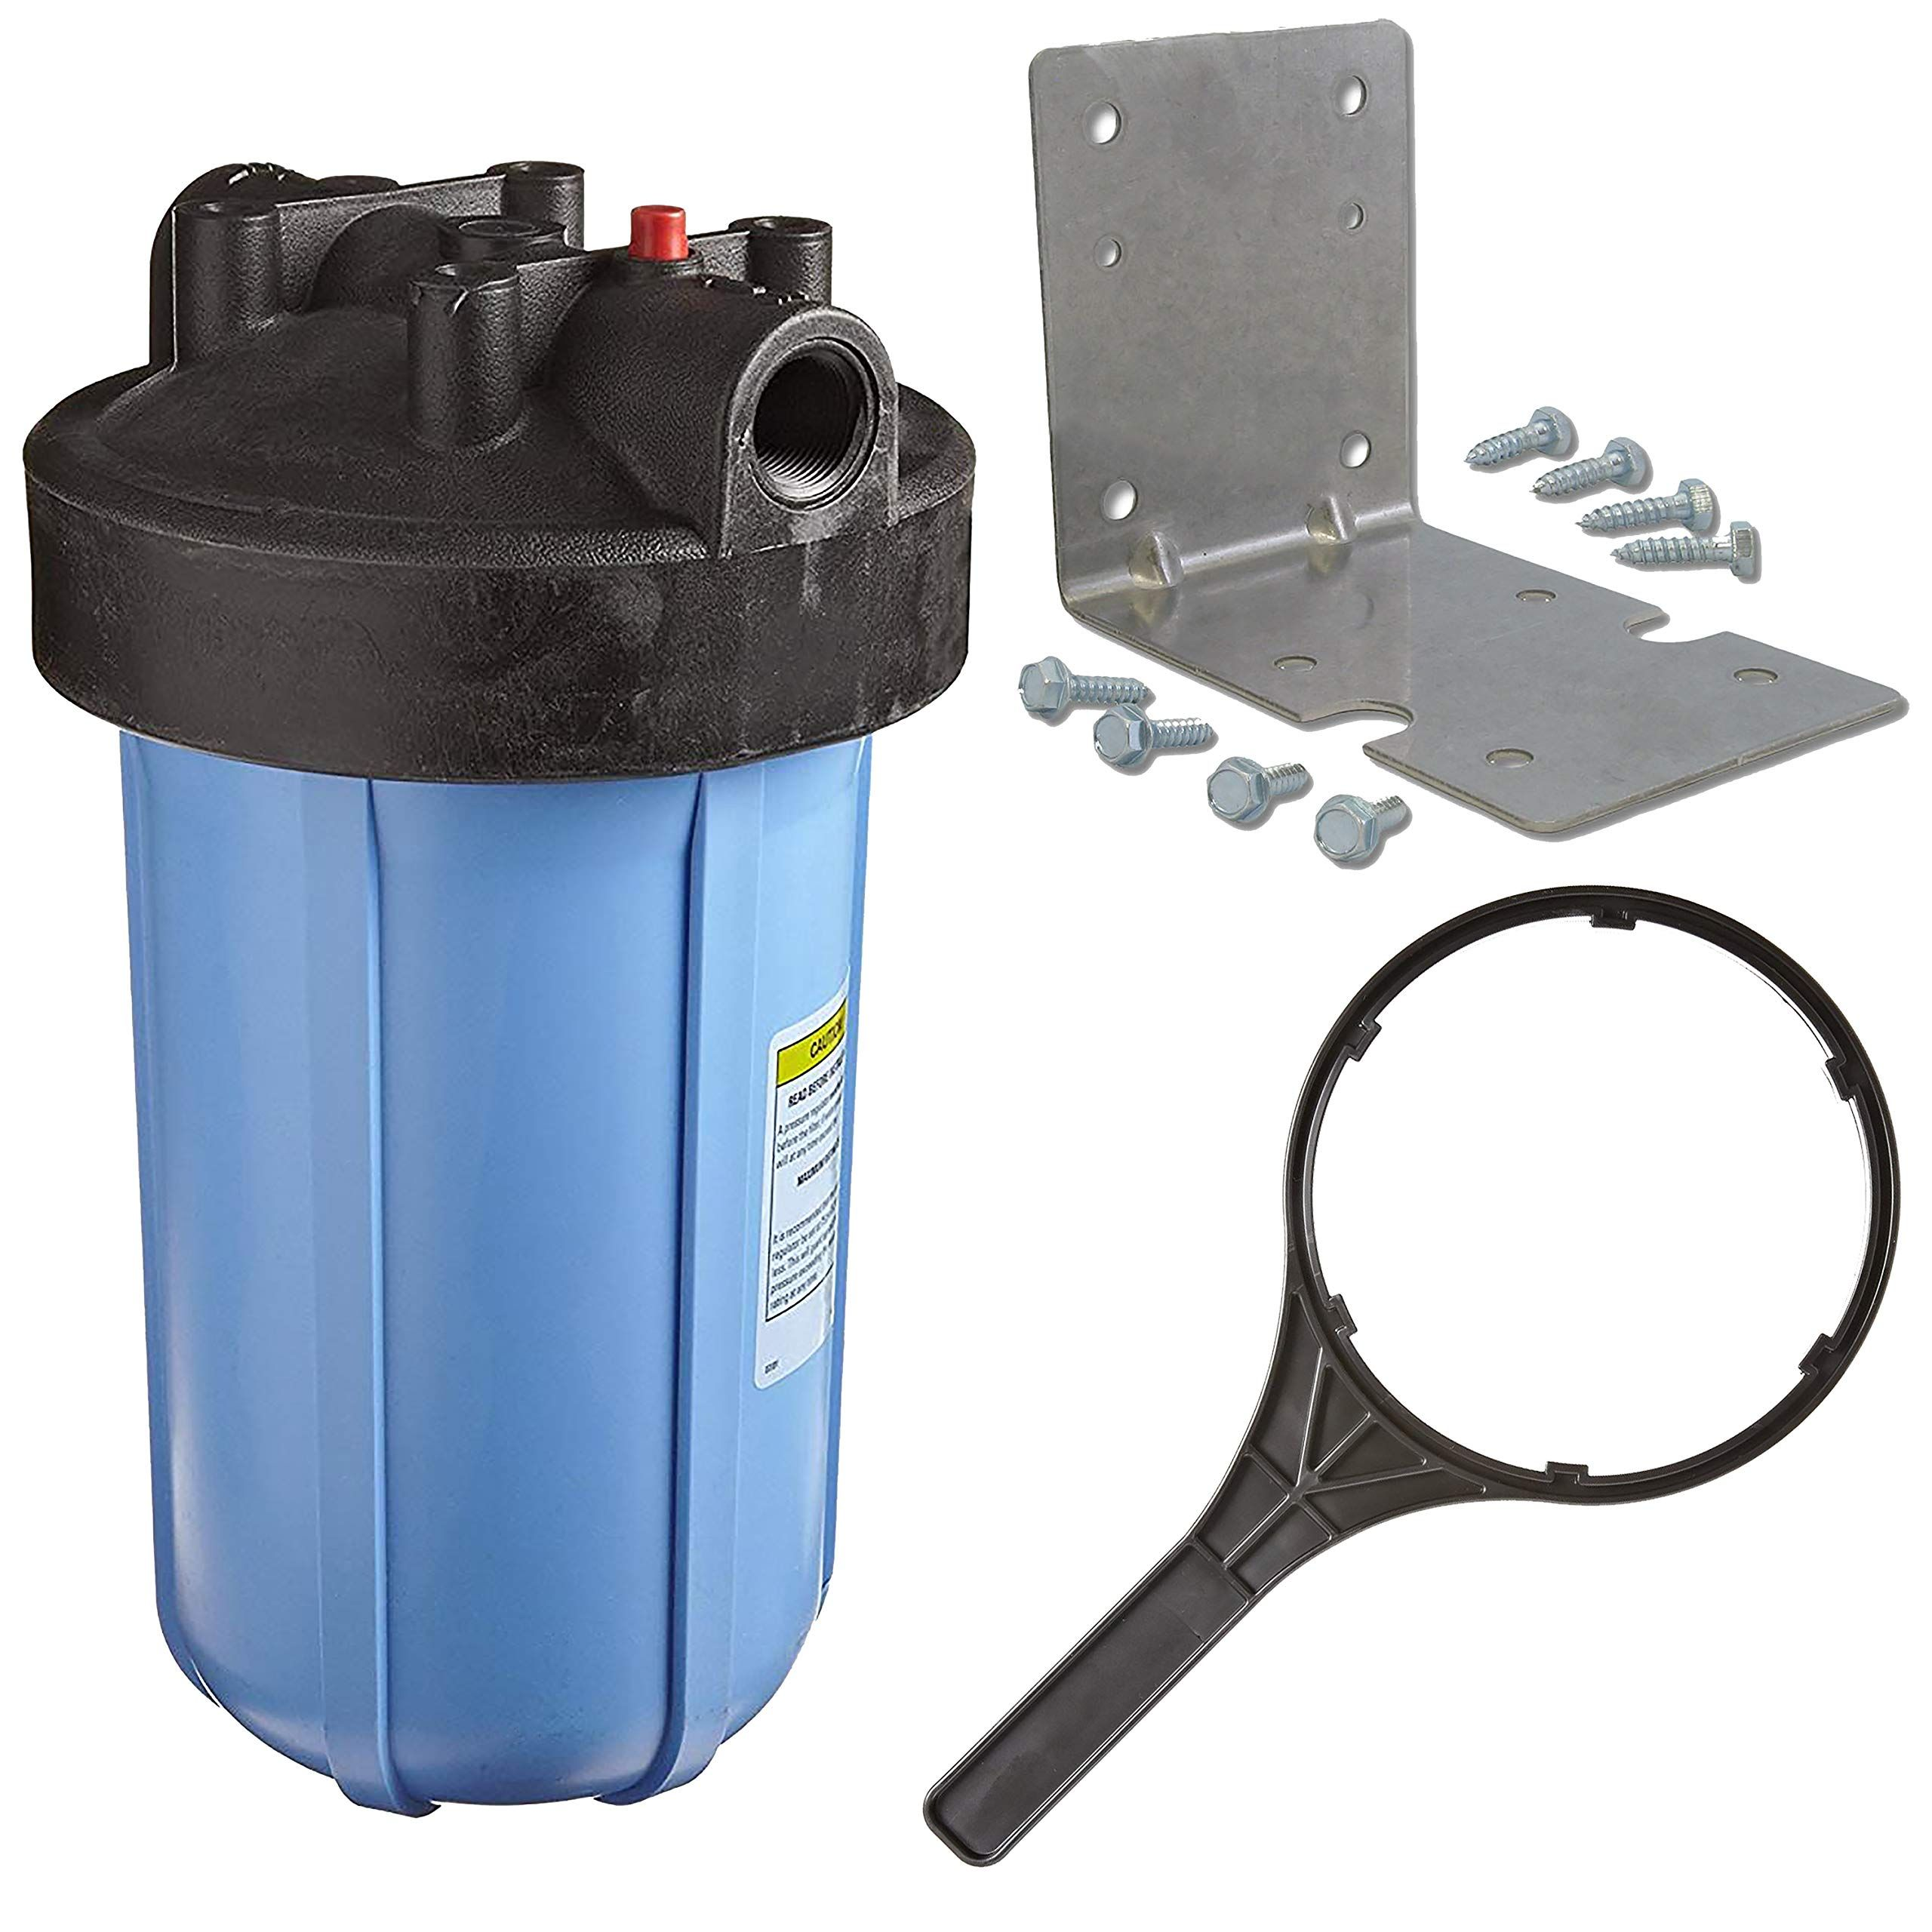 Pentek 1 Threaded 10 Genuine Big Blue Filter Housing Kit Complete With Bracket Screws And Wrench 150237 150061 150296 Visi Blue Filter Big Blue Wrench